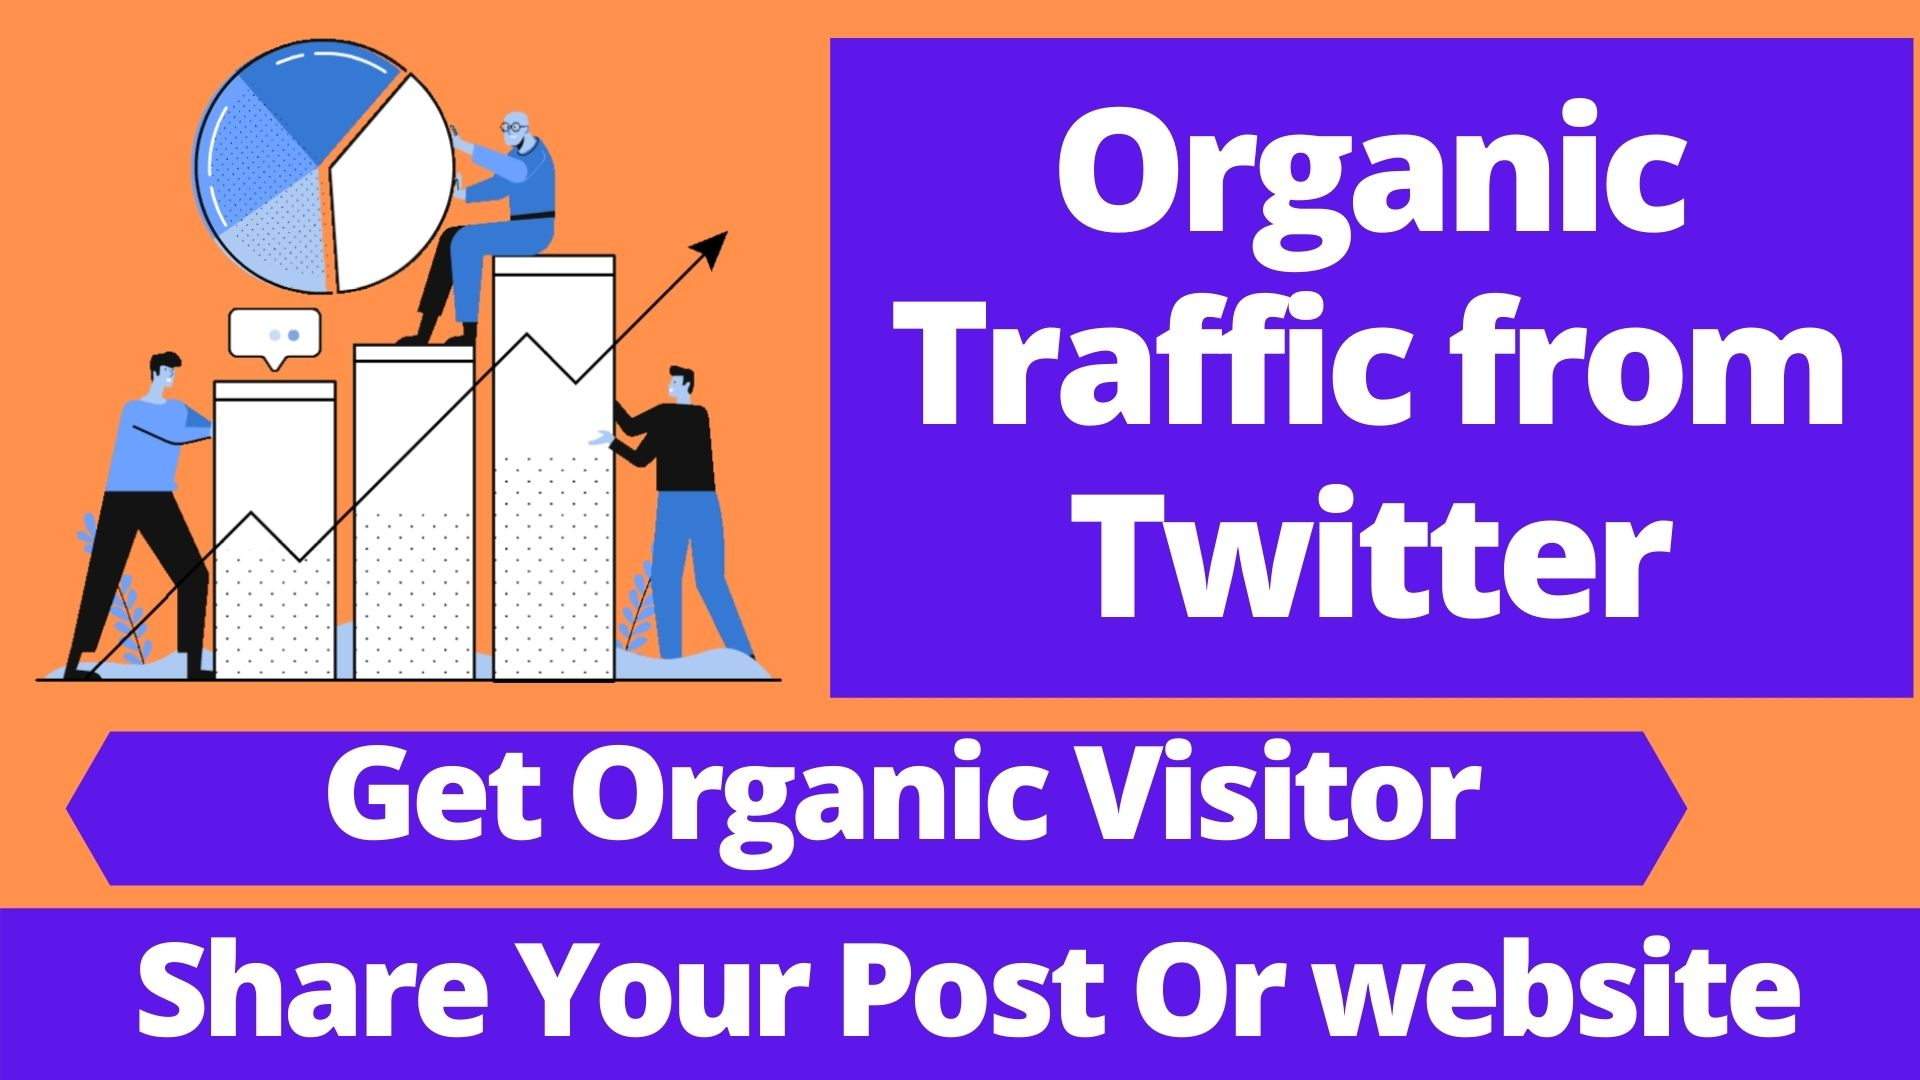 I will Share your Website/ Youtube Link on Twitter for Organic Traffic